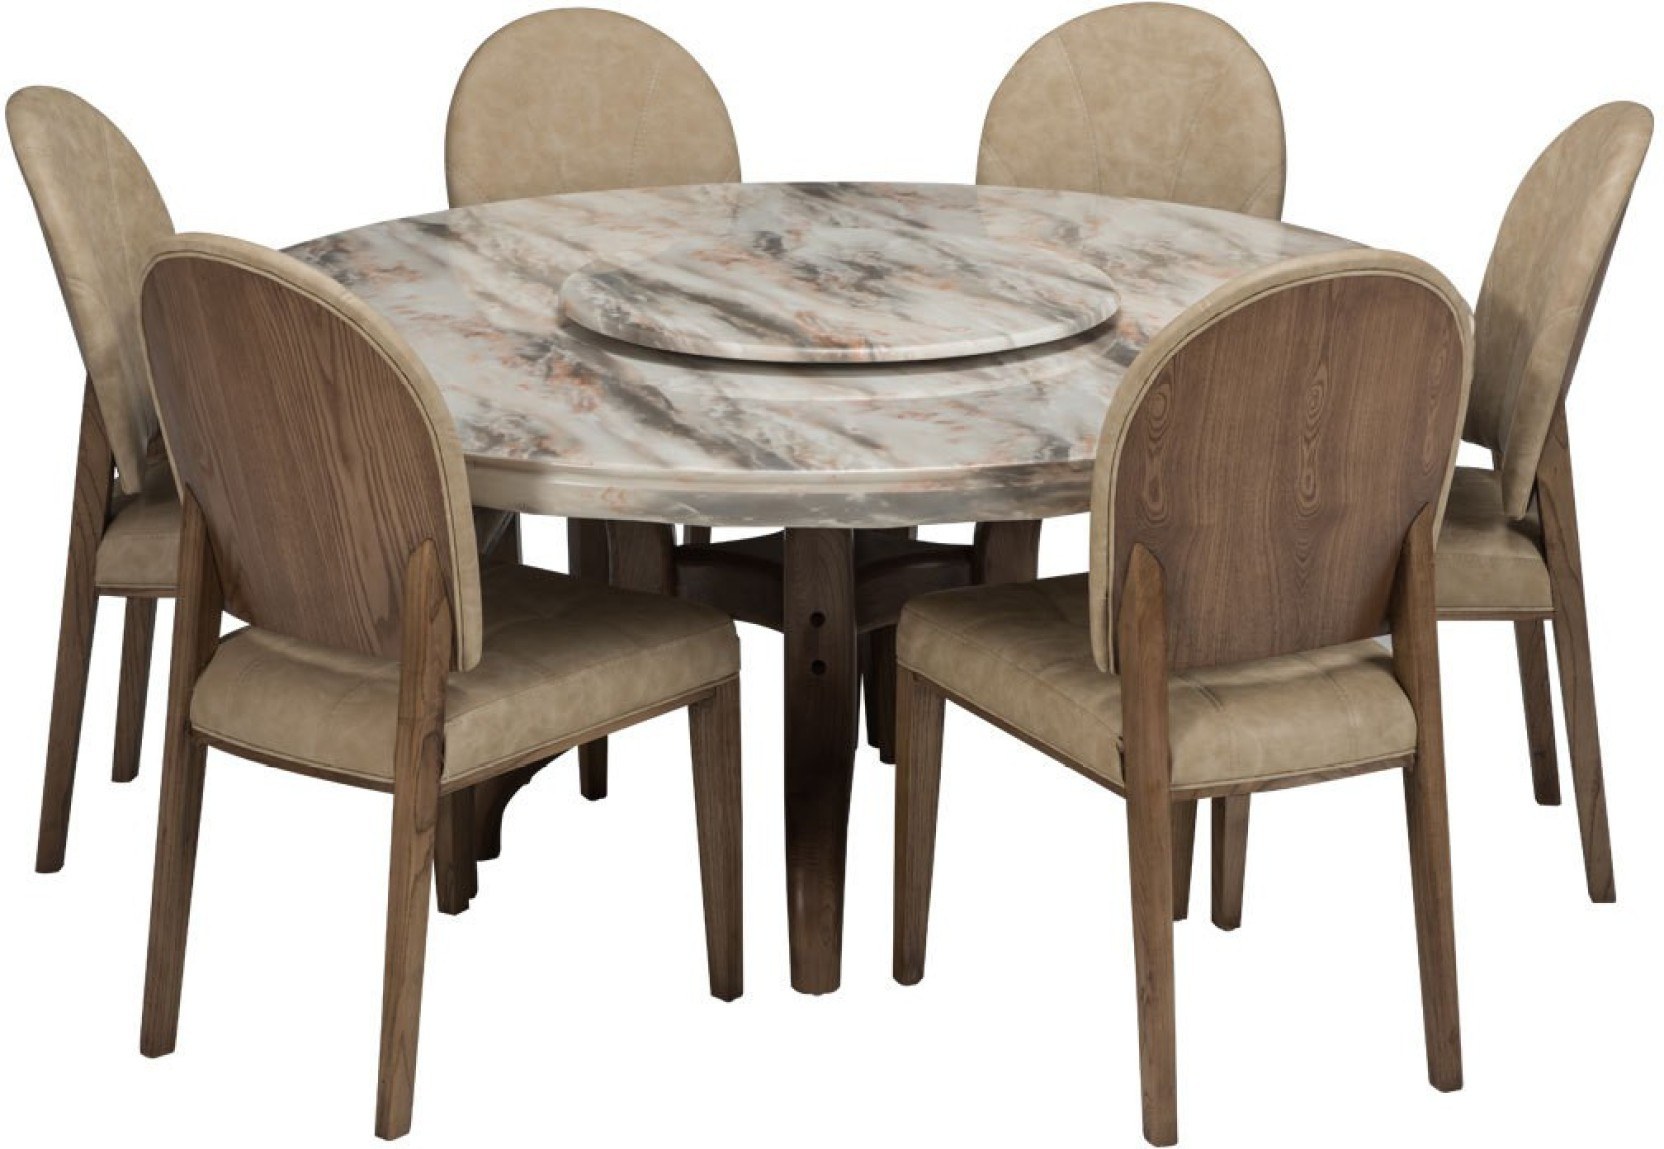 337cee57b Durian SINCLAIR Stone 6 Seater Dining Set Price in India - Buy ...